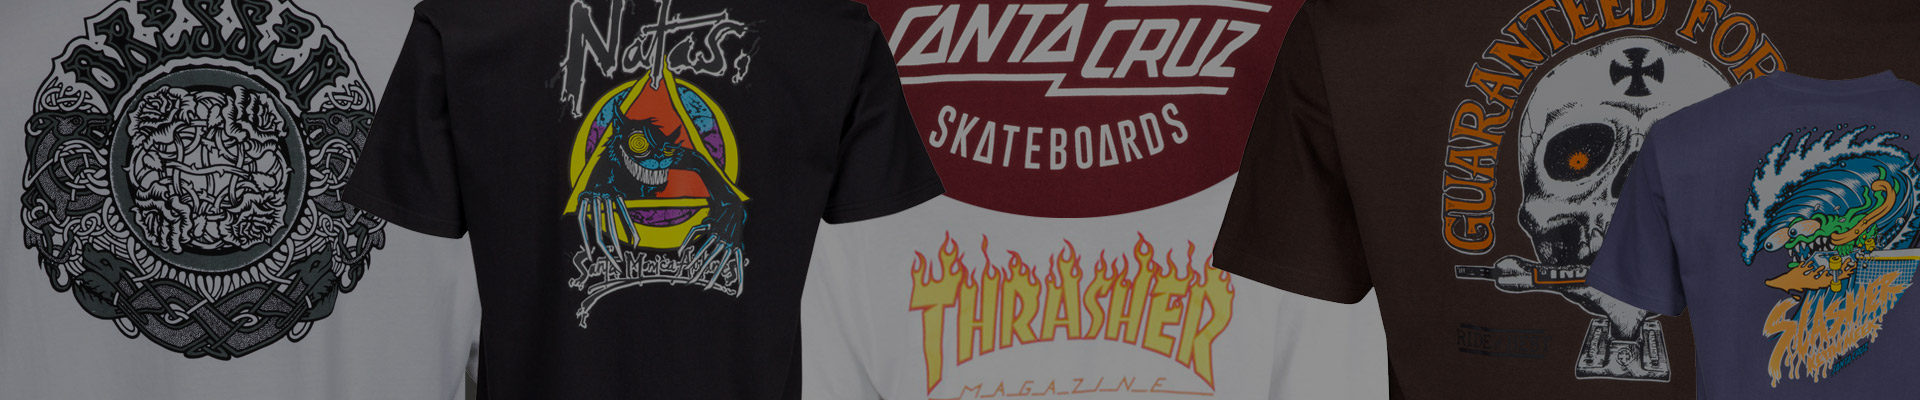 Tops & T-Shirts online | Buy Now on Xtreme-Skate.com